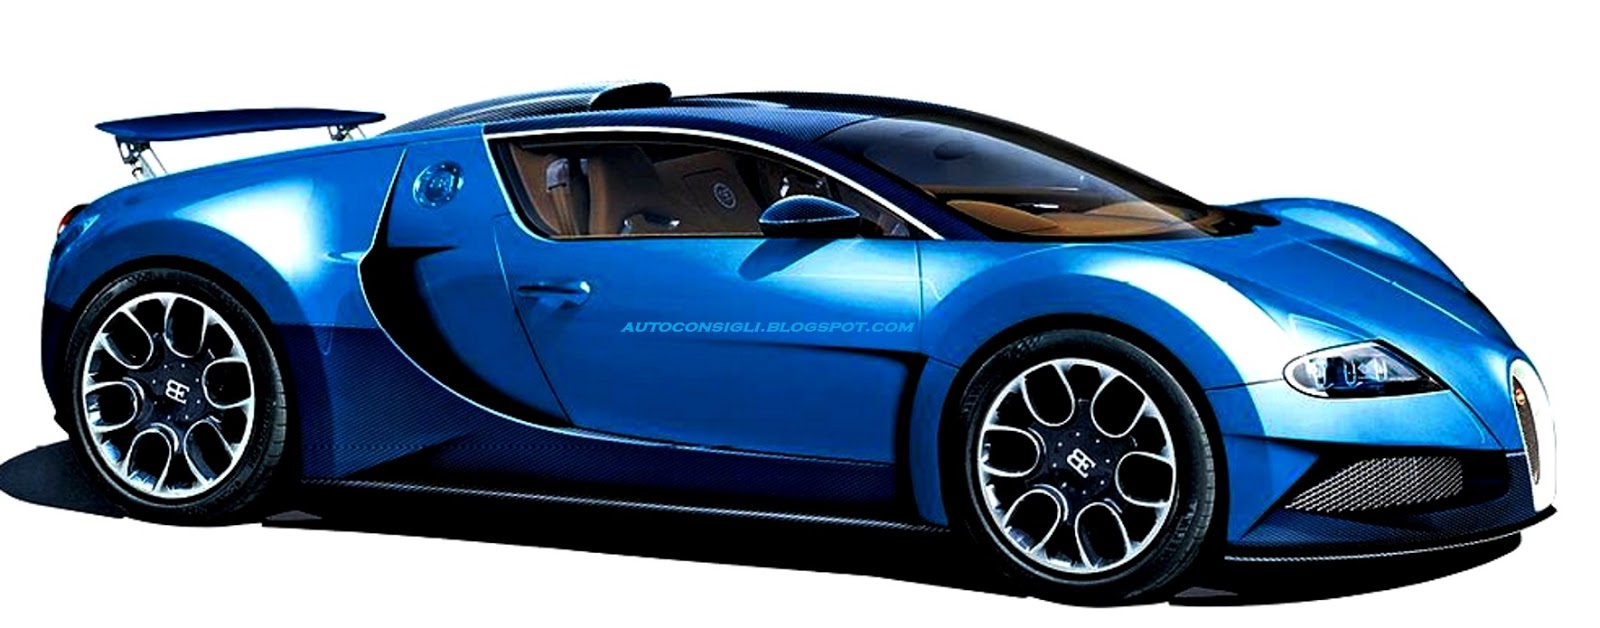 car al top 33 bugatti nel 2014 verr esibita la super veyron da cv. Black Bedroom Furniture Sets. Home Design Ideas